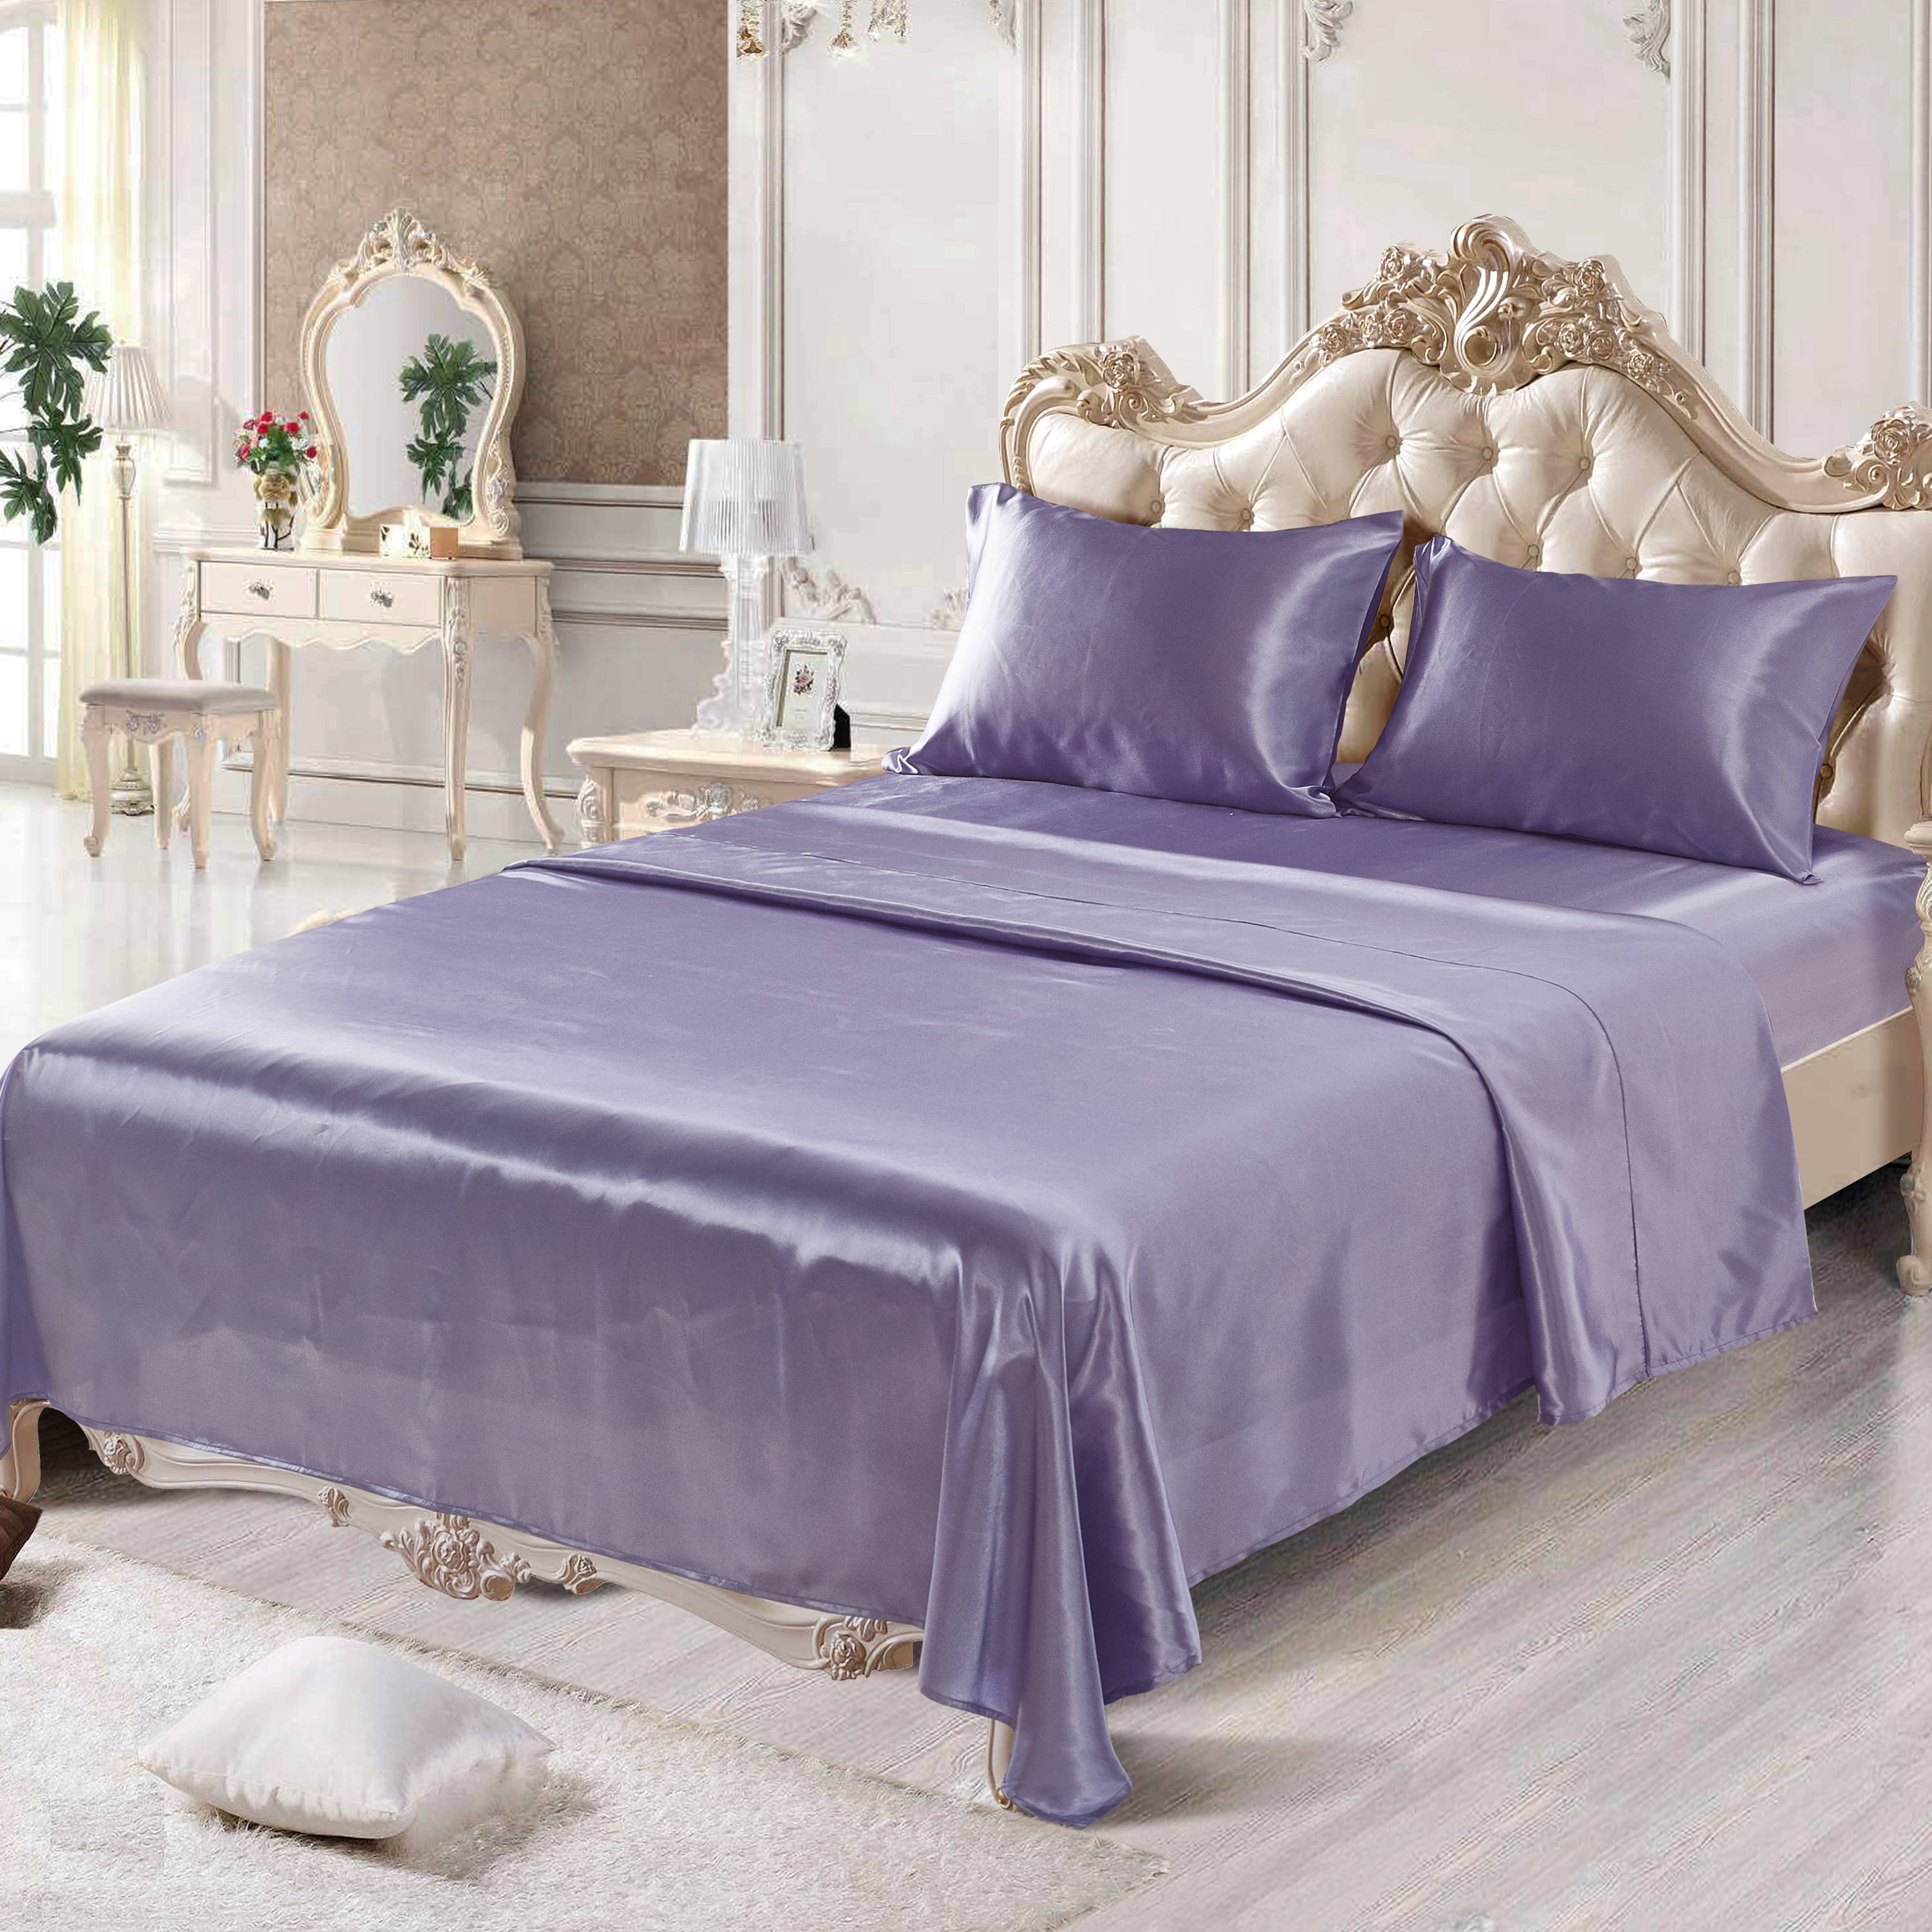 Reactive Printing Technics Polyester Material Plain Pattern Bedding Sets